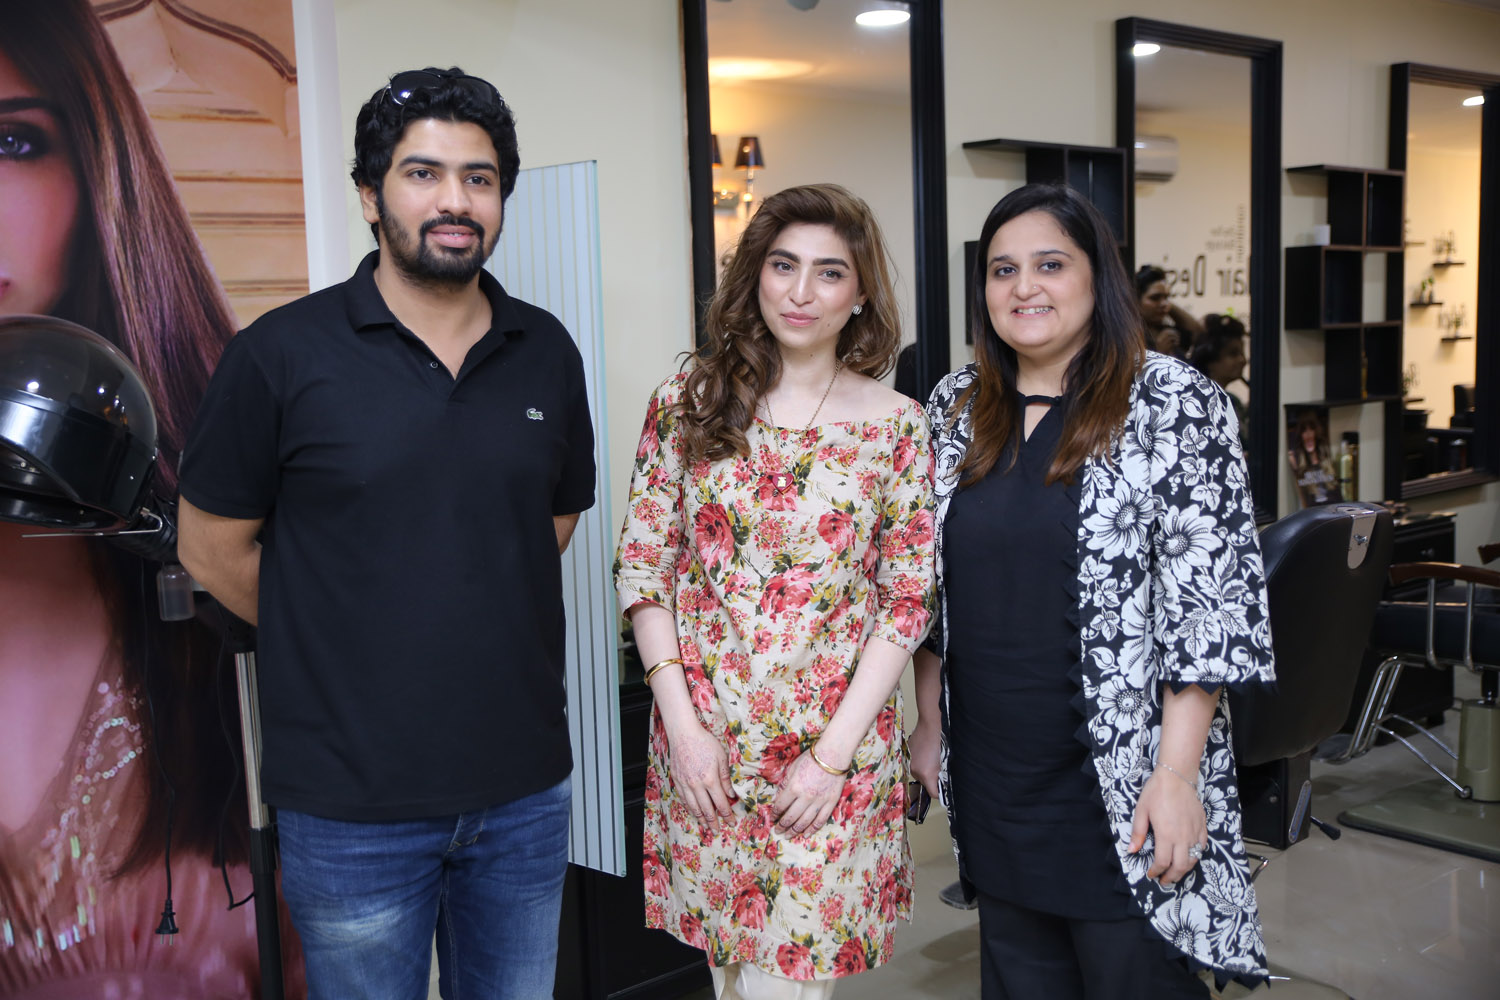 Ali Chaudhry, Sana Butt and Annam Burki